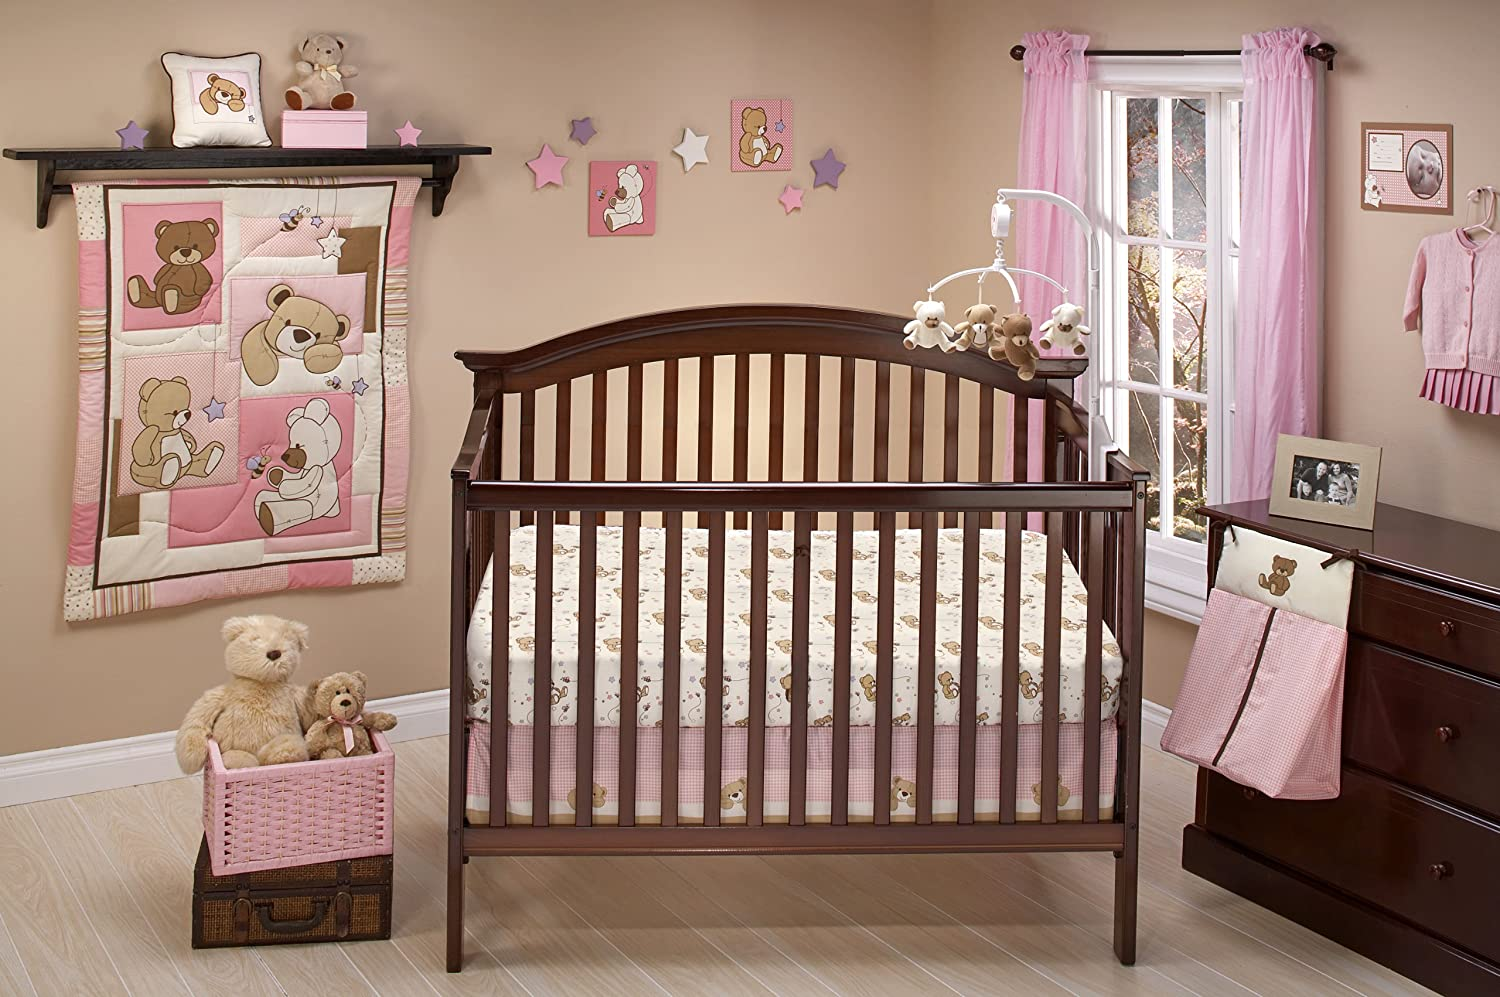 Little Bedding Little Set Dreamland Teddy Girl Crib Bedding Set Bedding [並行輸入品] B008UF0THG, RINKAN:7164eb08 --- zonespirits.xyz